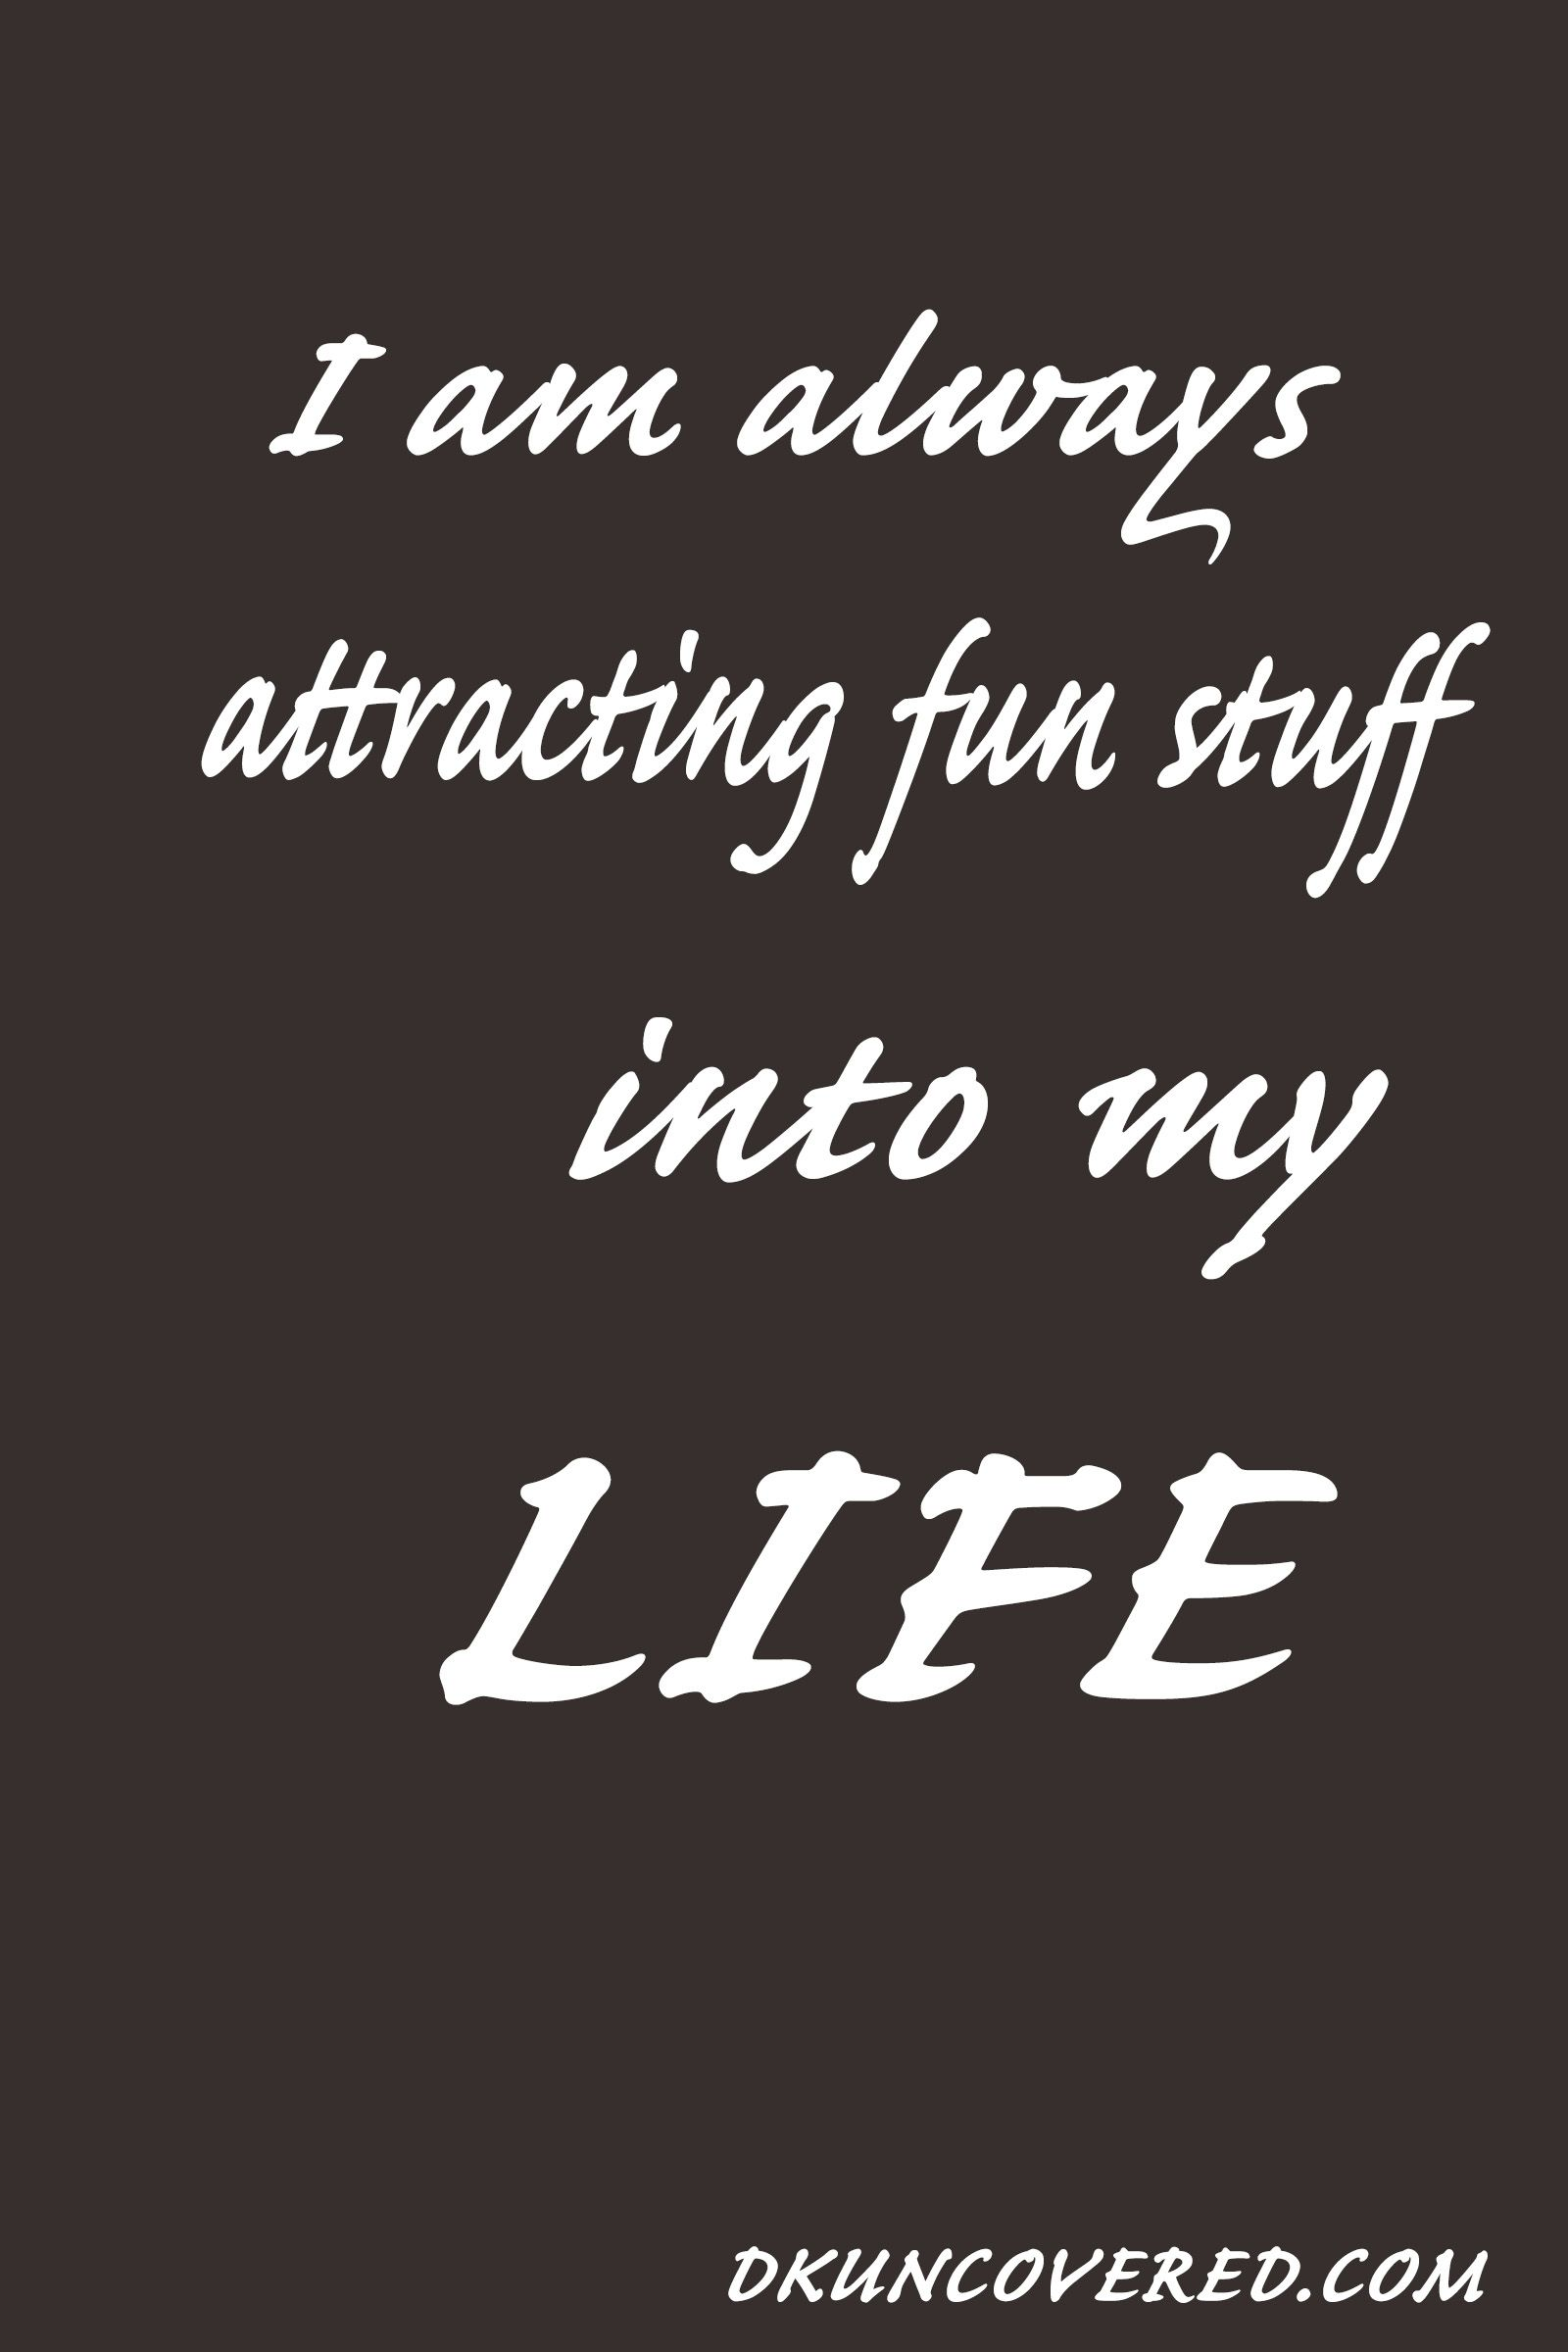 Laws Of Life Quotes Attracting Fun Stuff Into My Life8X12 Law Of Attraction